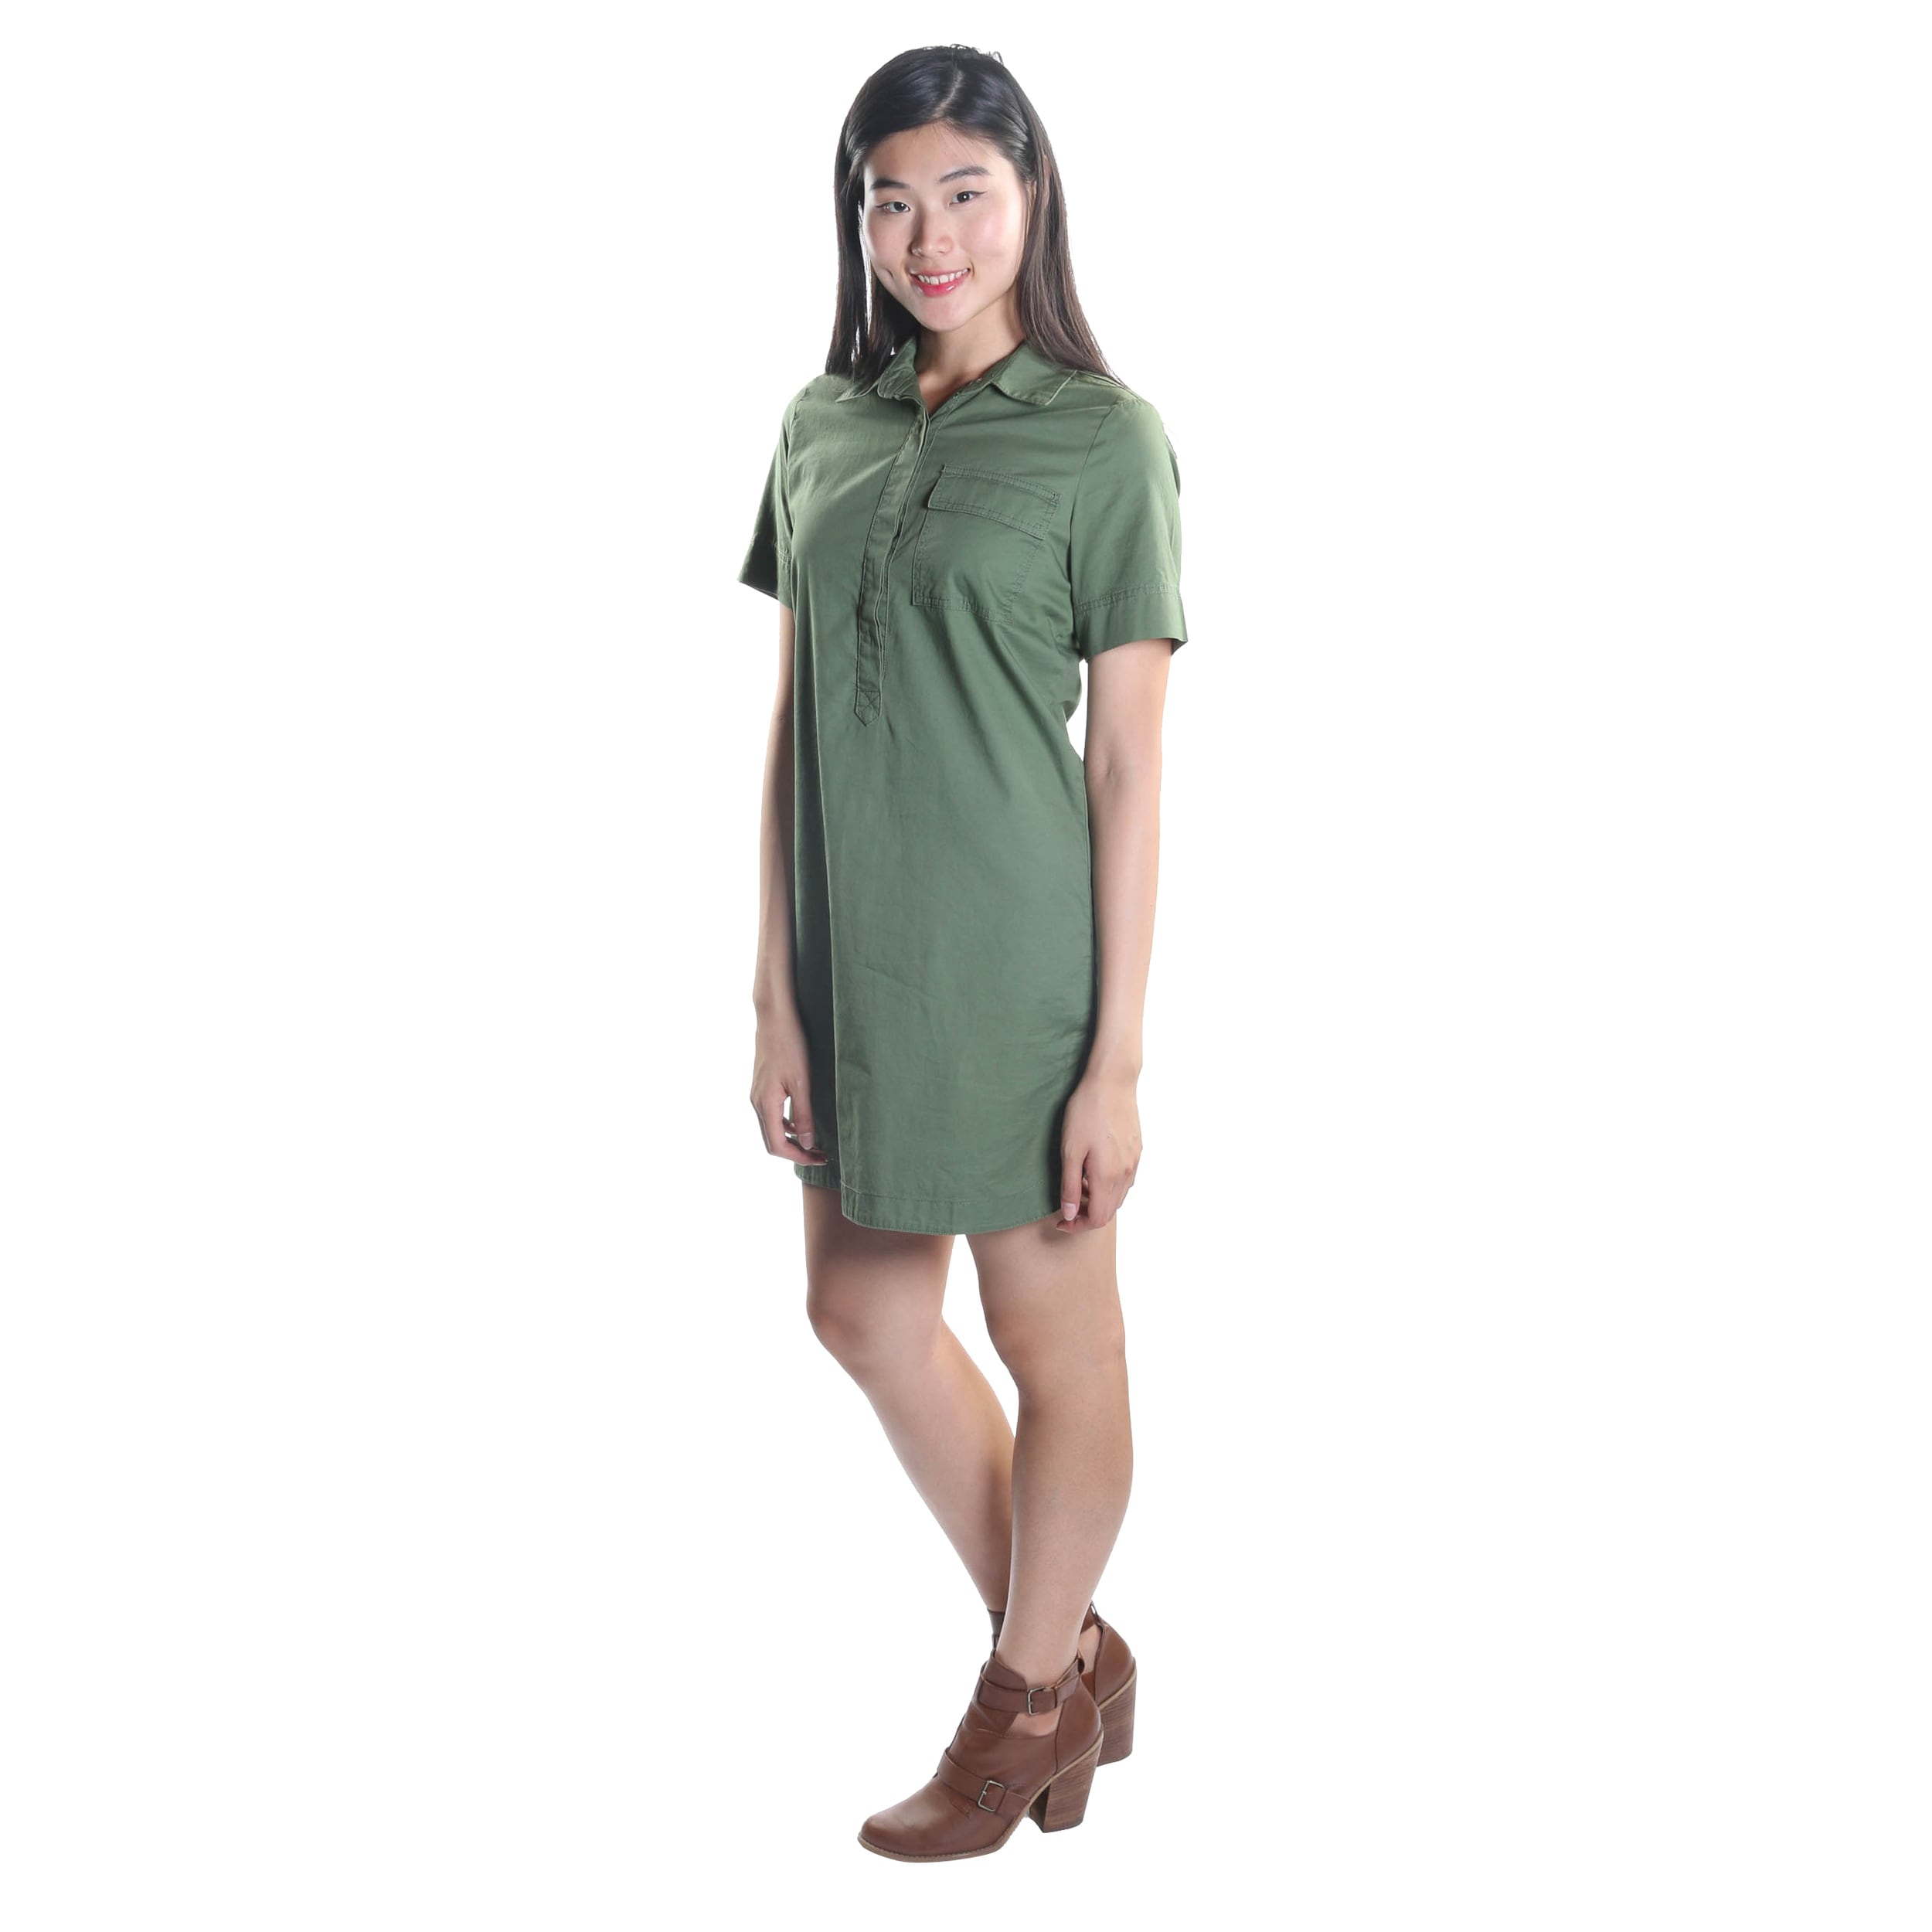 5ec85a2c37 Shop Hadari Women s Short Sleeve Button Down Wing Collar Midi Dress with  Frontal Pocket - Free Shipping On Orders Over  45 - Overstock - 12526141